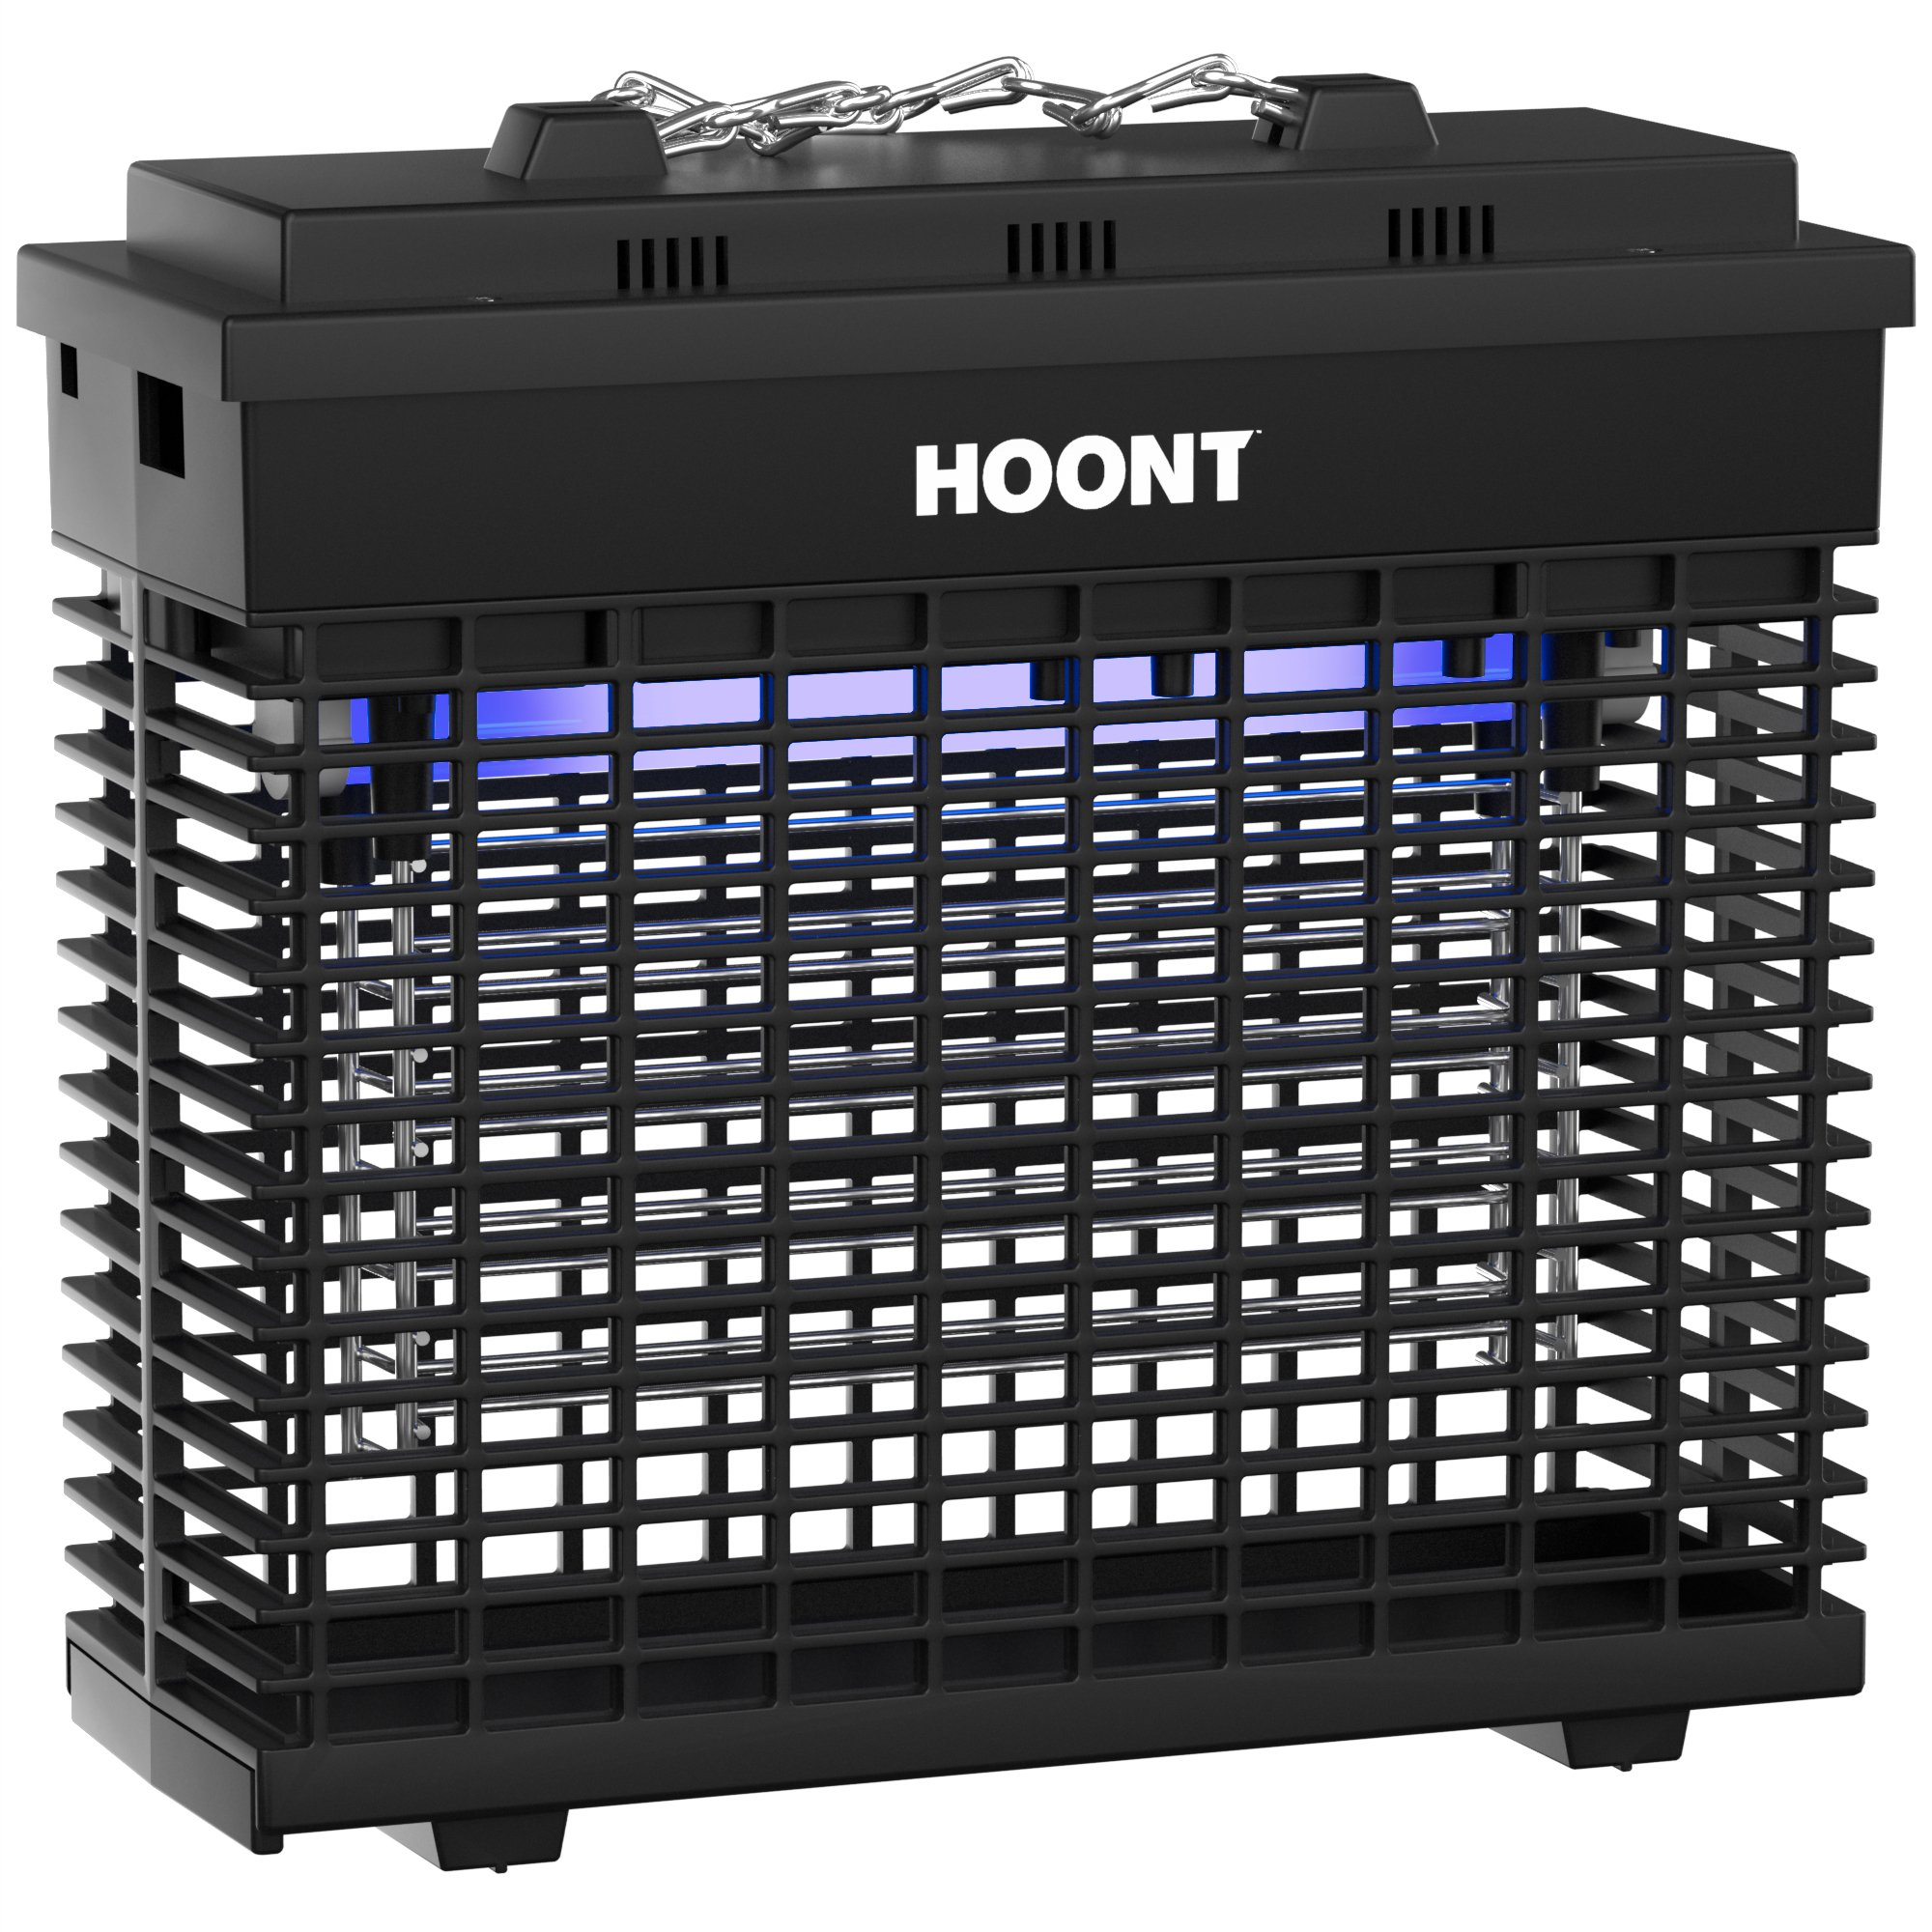 Hoont Robust Electric Indoor Bug Zapper and Fly Zapper Killer Catcher Trap – Covers 2,000 Sq. Ft / Bug and Fly Killer, Insect Killer, Mosquito Killer – For Residential, Commercial and Industrial Use by Hoont